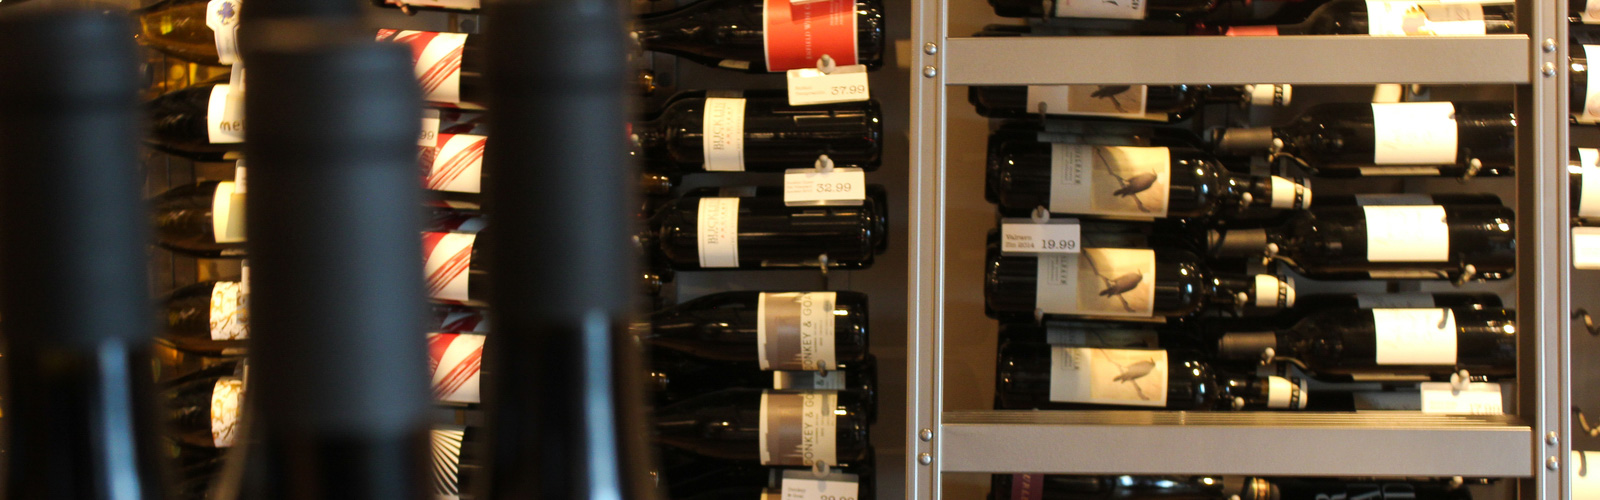 Winkler & Samuels shares its passion for wine through classes, its wine cellar, and a retail store.